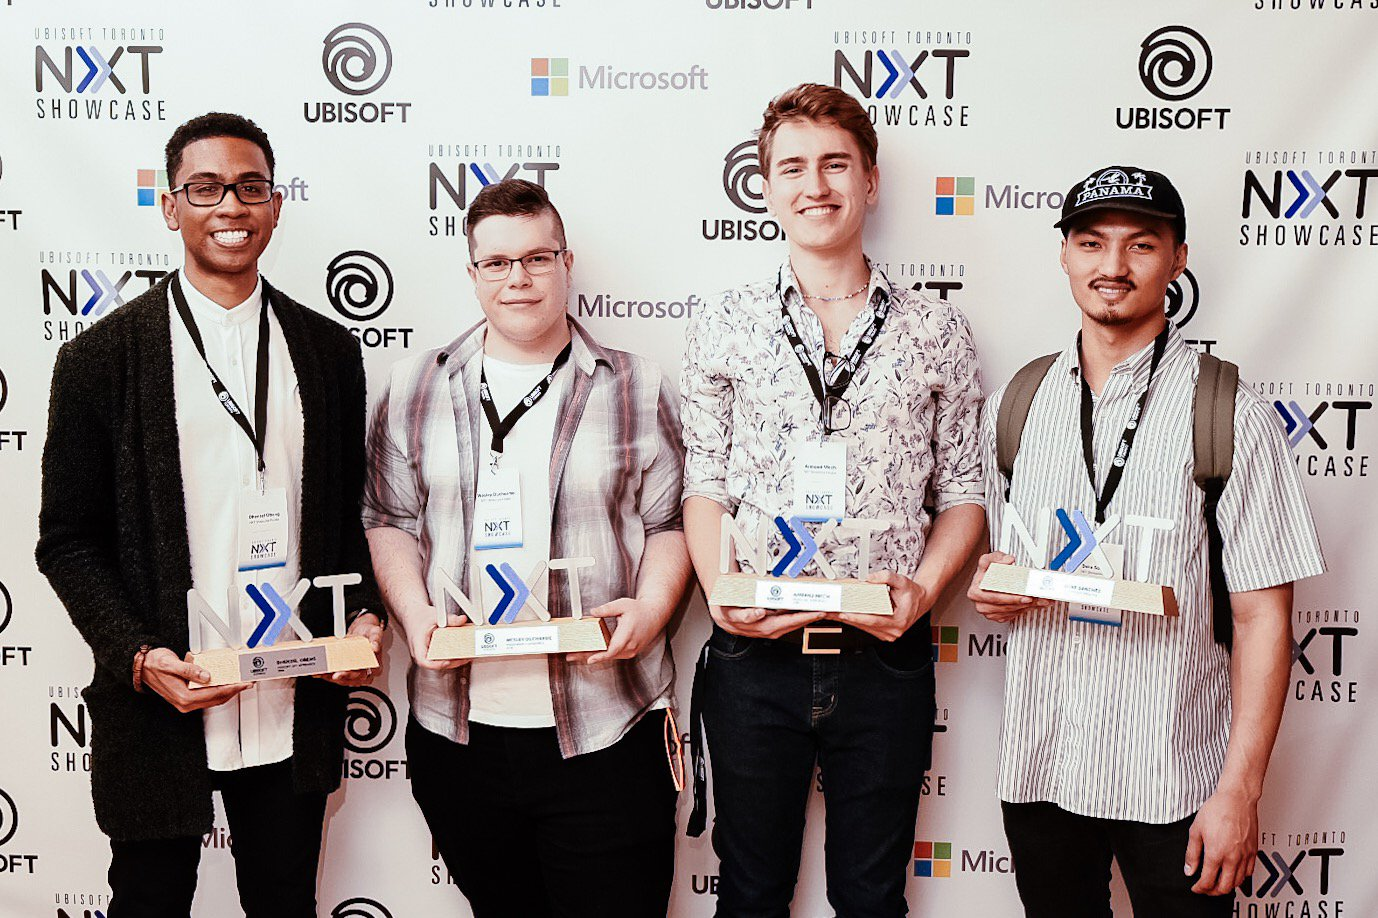 Congratulations to the 2018 NXT Showcase winners!